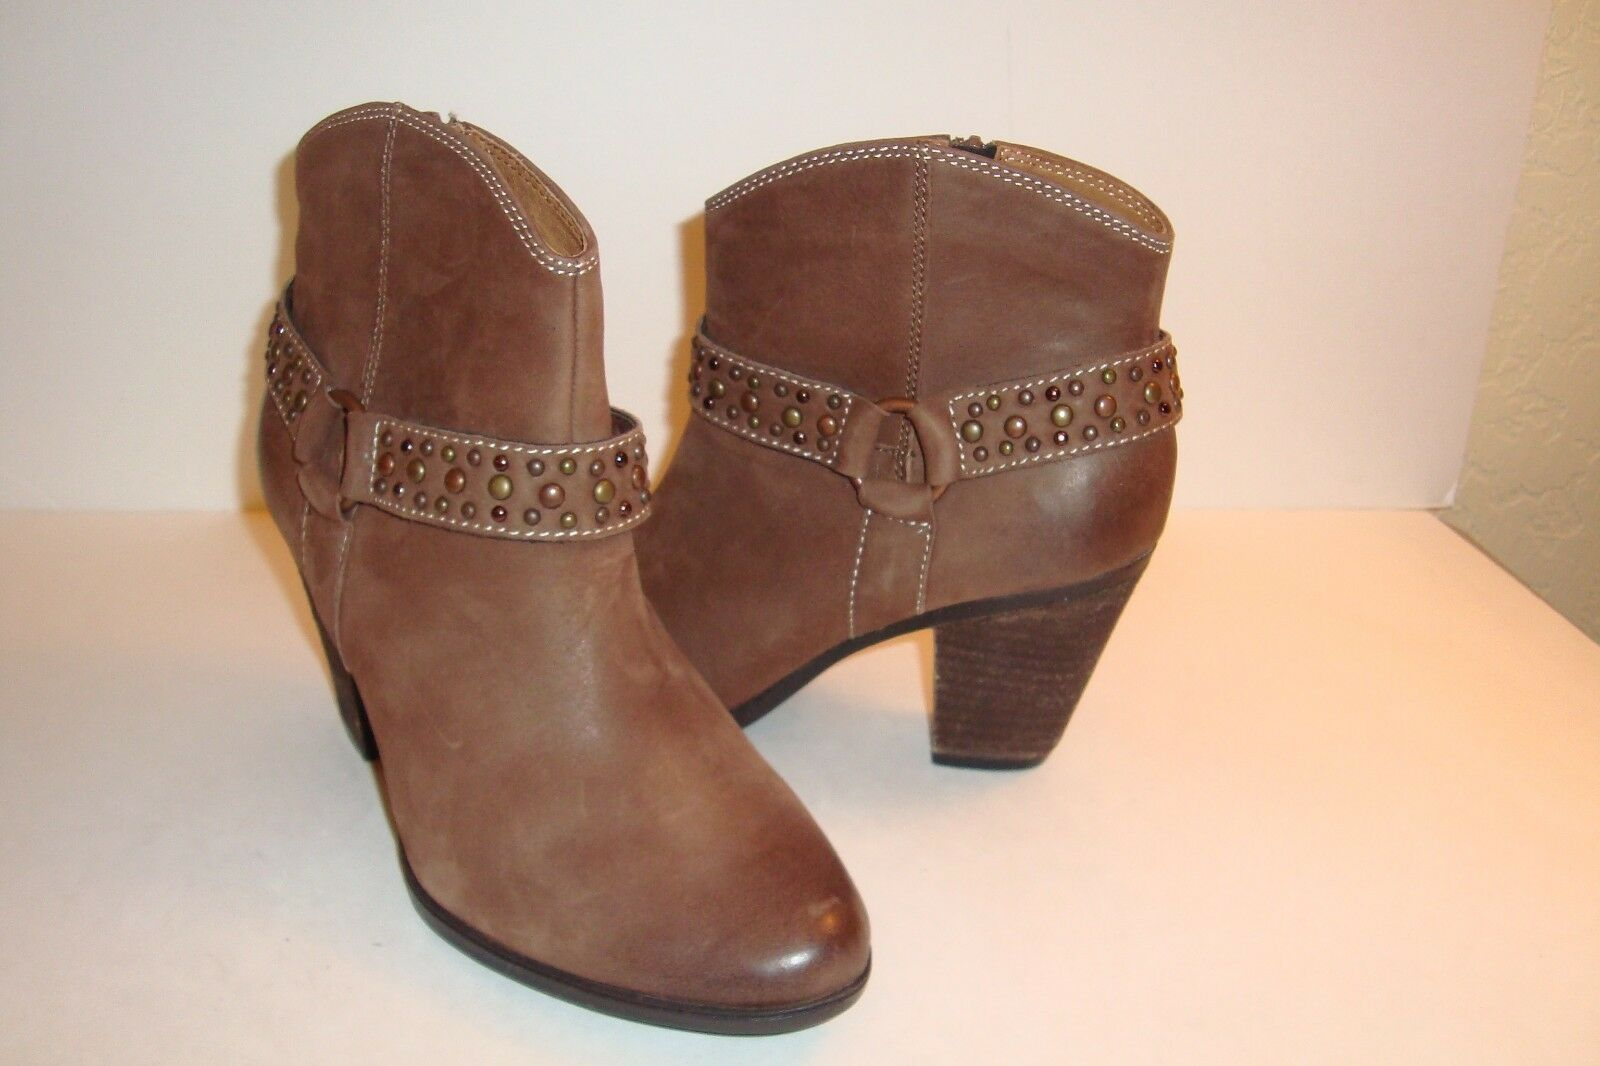 Sofft Womens NWOB Brown Ankle Boots Boots Boots shoes 7 MED NEW 8137e4